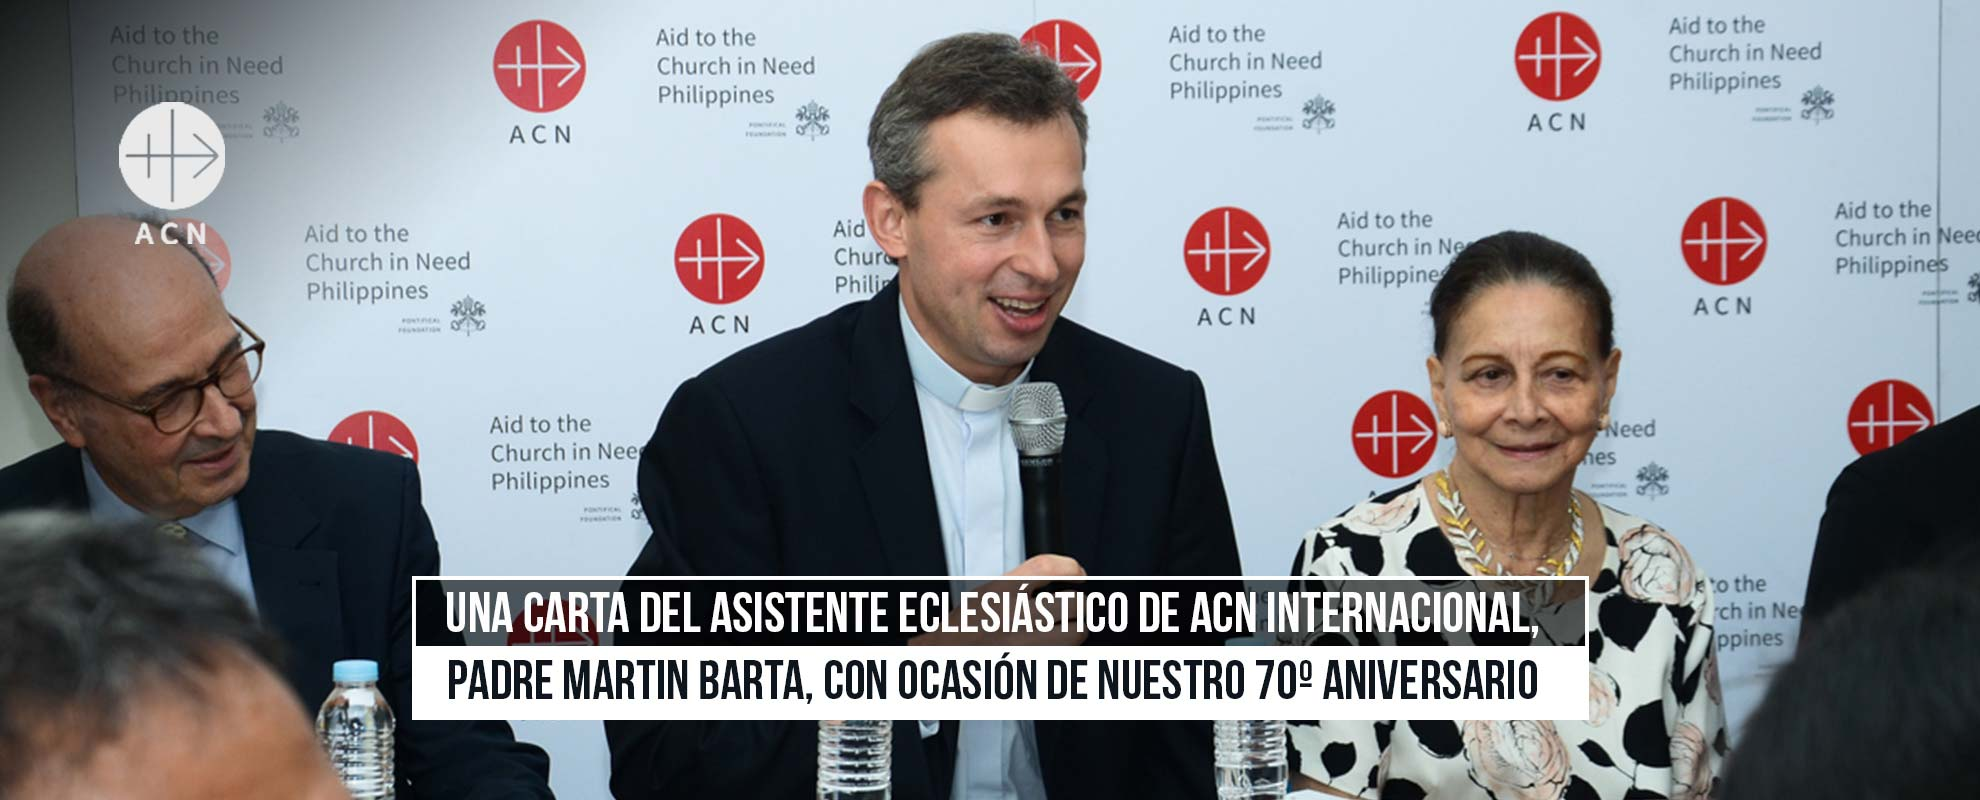 A letter by ACN International's Ecclesiastical Assistant, Father Martin Barta, on the occasion of our 70th anniversary